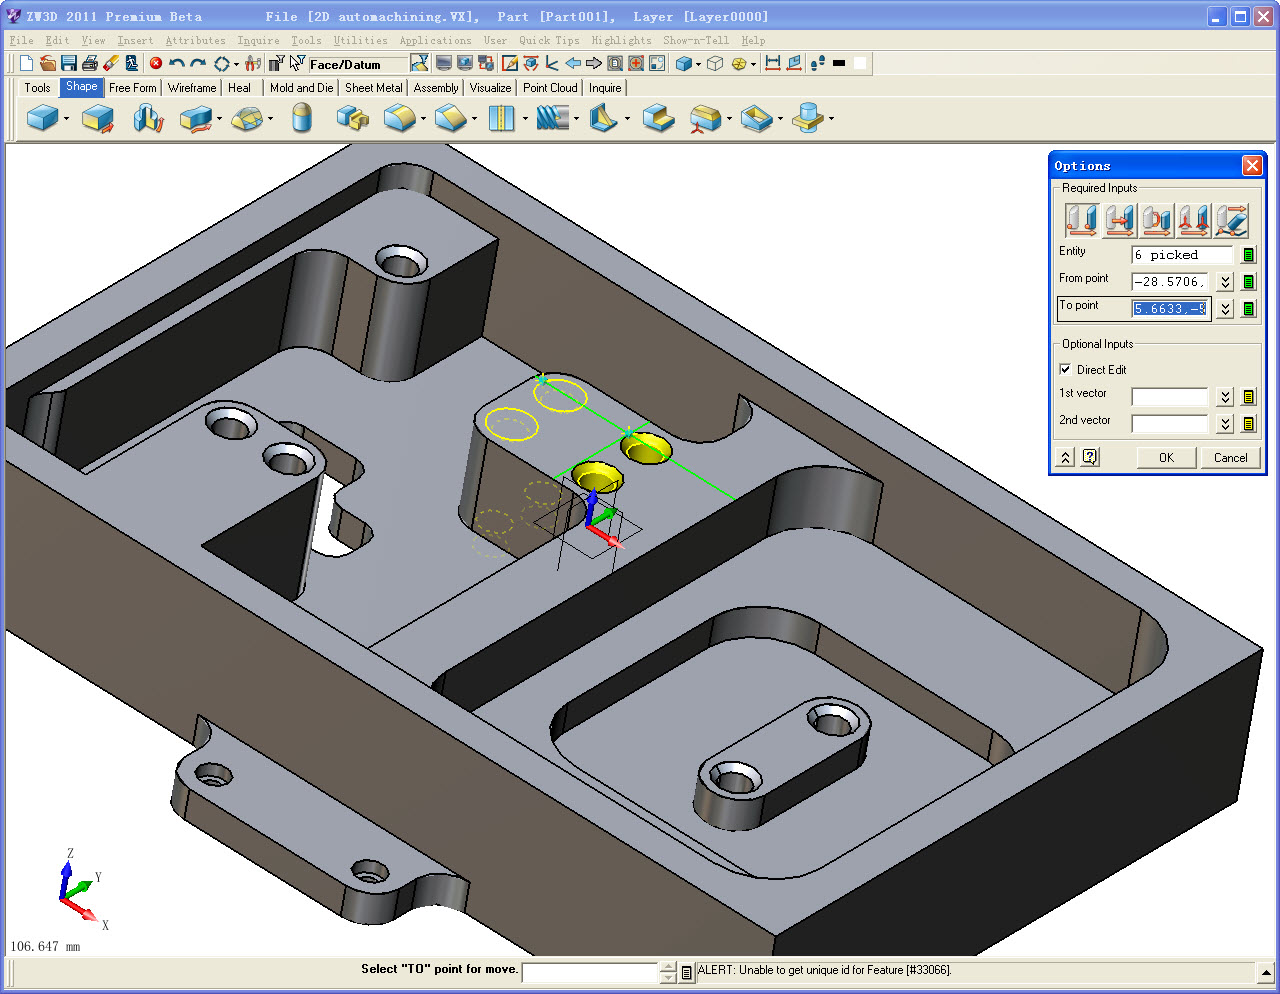 Ray Kurlands Blog Synchronizing Selections Between Solidworksr And Comsol Multiphysics Asked About Their Differentiators Fischer Cited Ability To Directly Import A Great Variety Of Geometry Sources Built In Training System